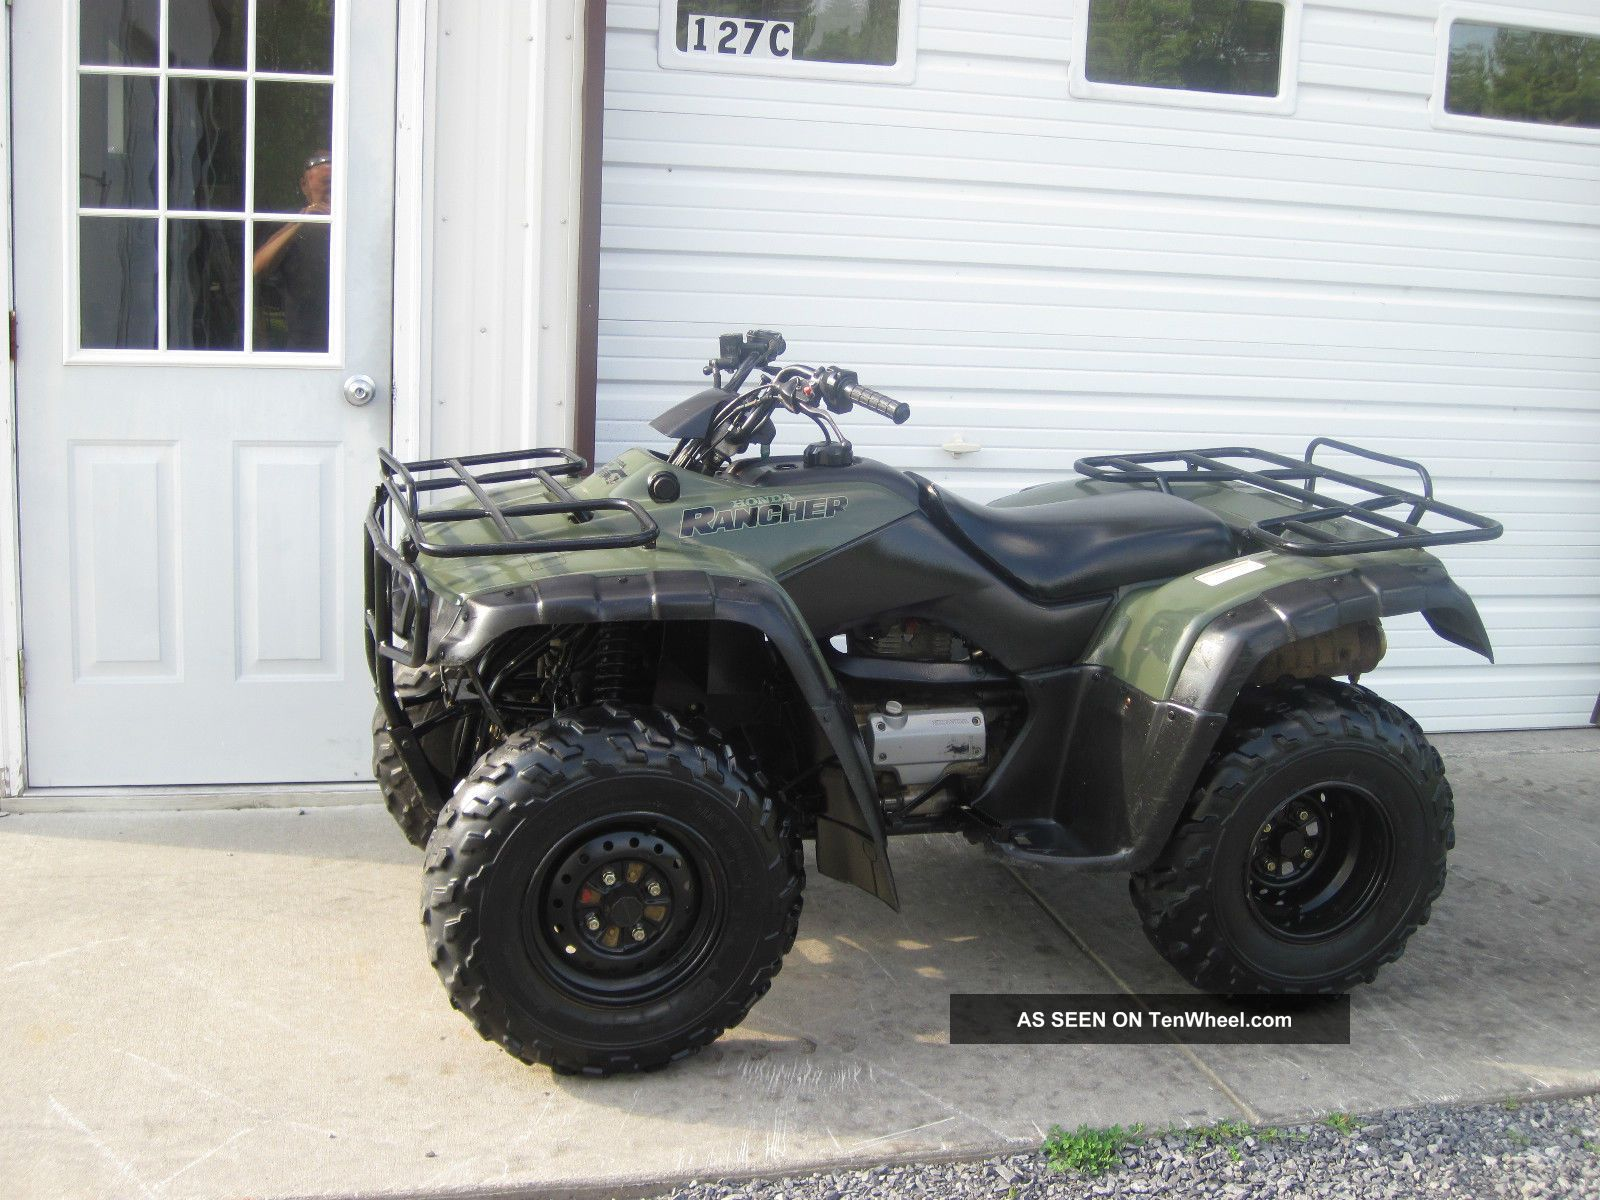 2001 Honda Rancher Honda photo